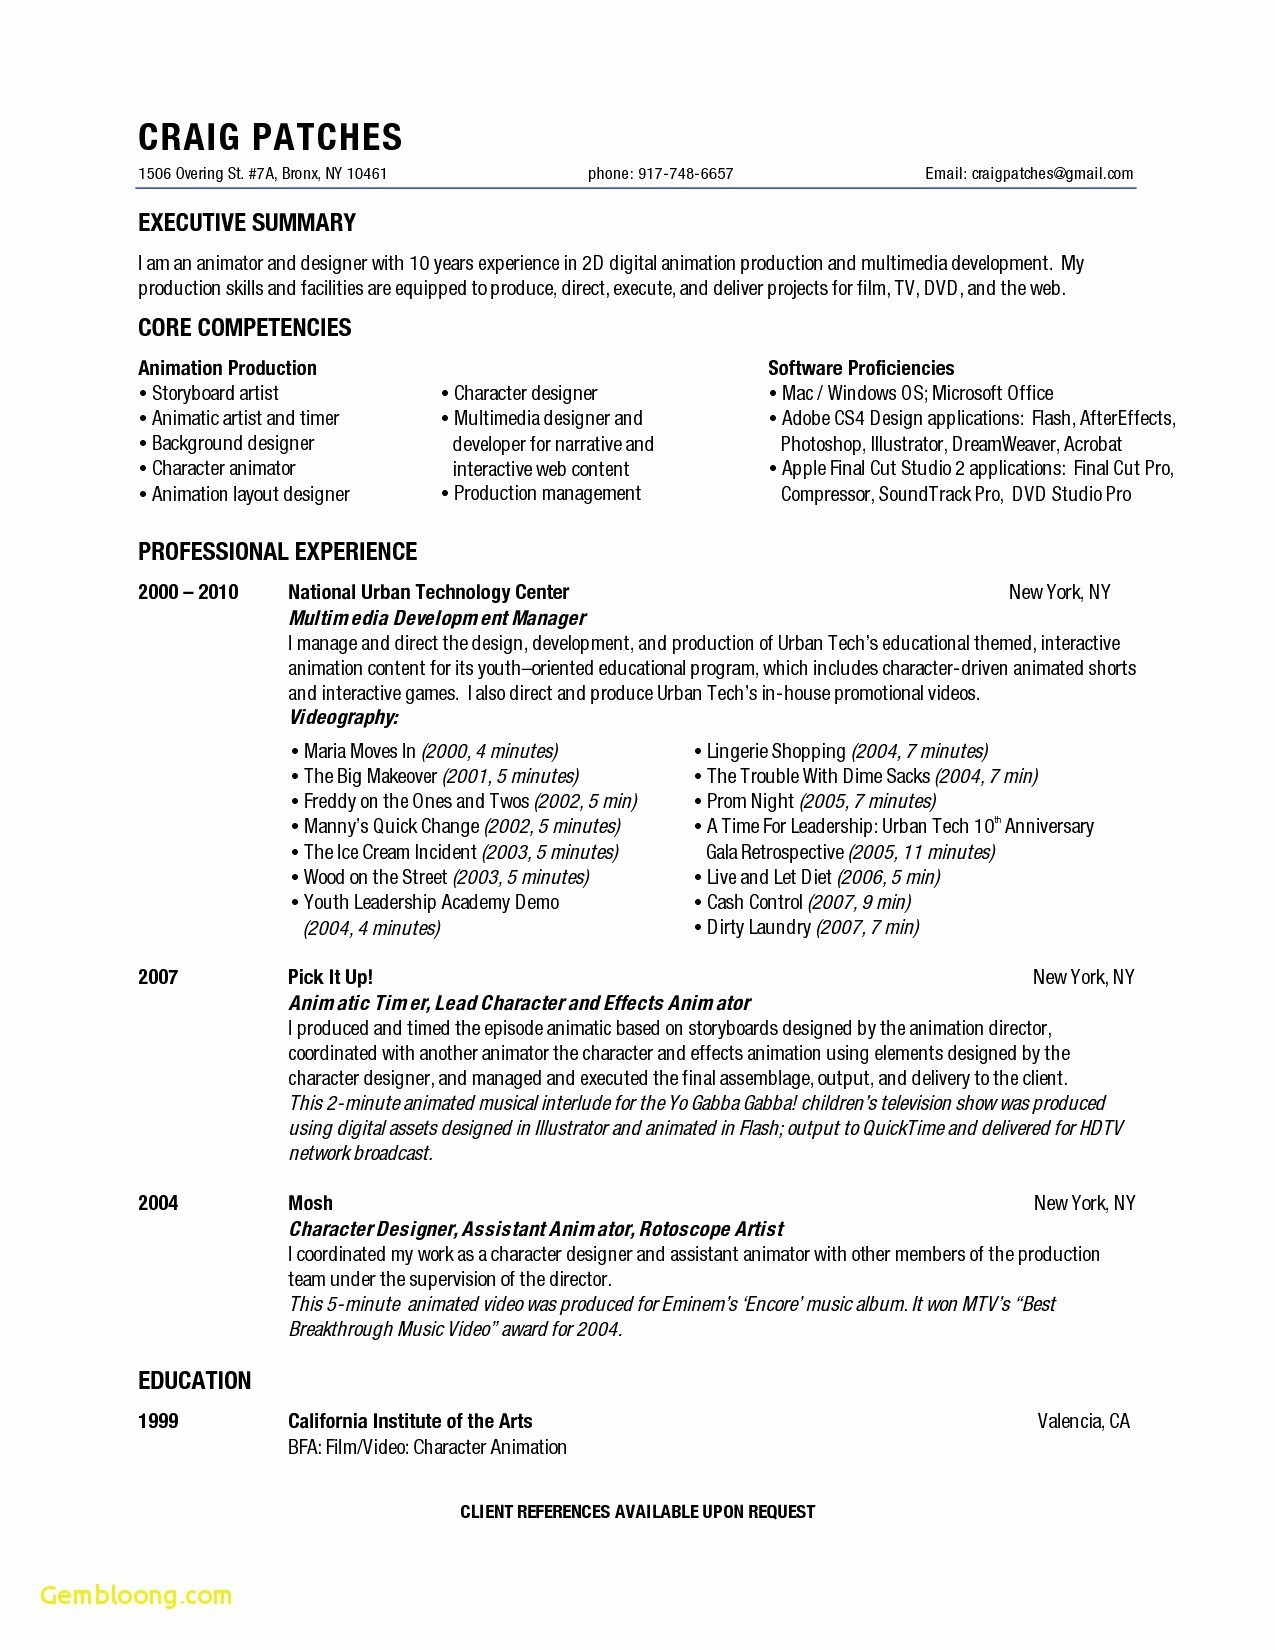 Stage Manager Resume Template - Stage Manager Resume Unique Inspirational Personal Skills In Resume